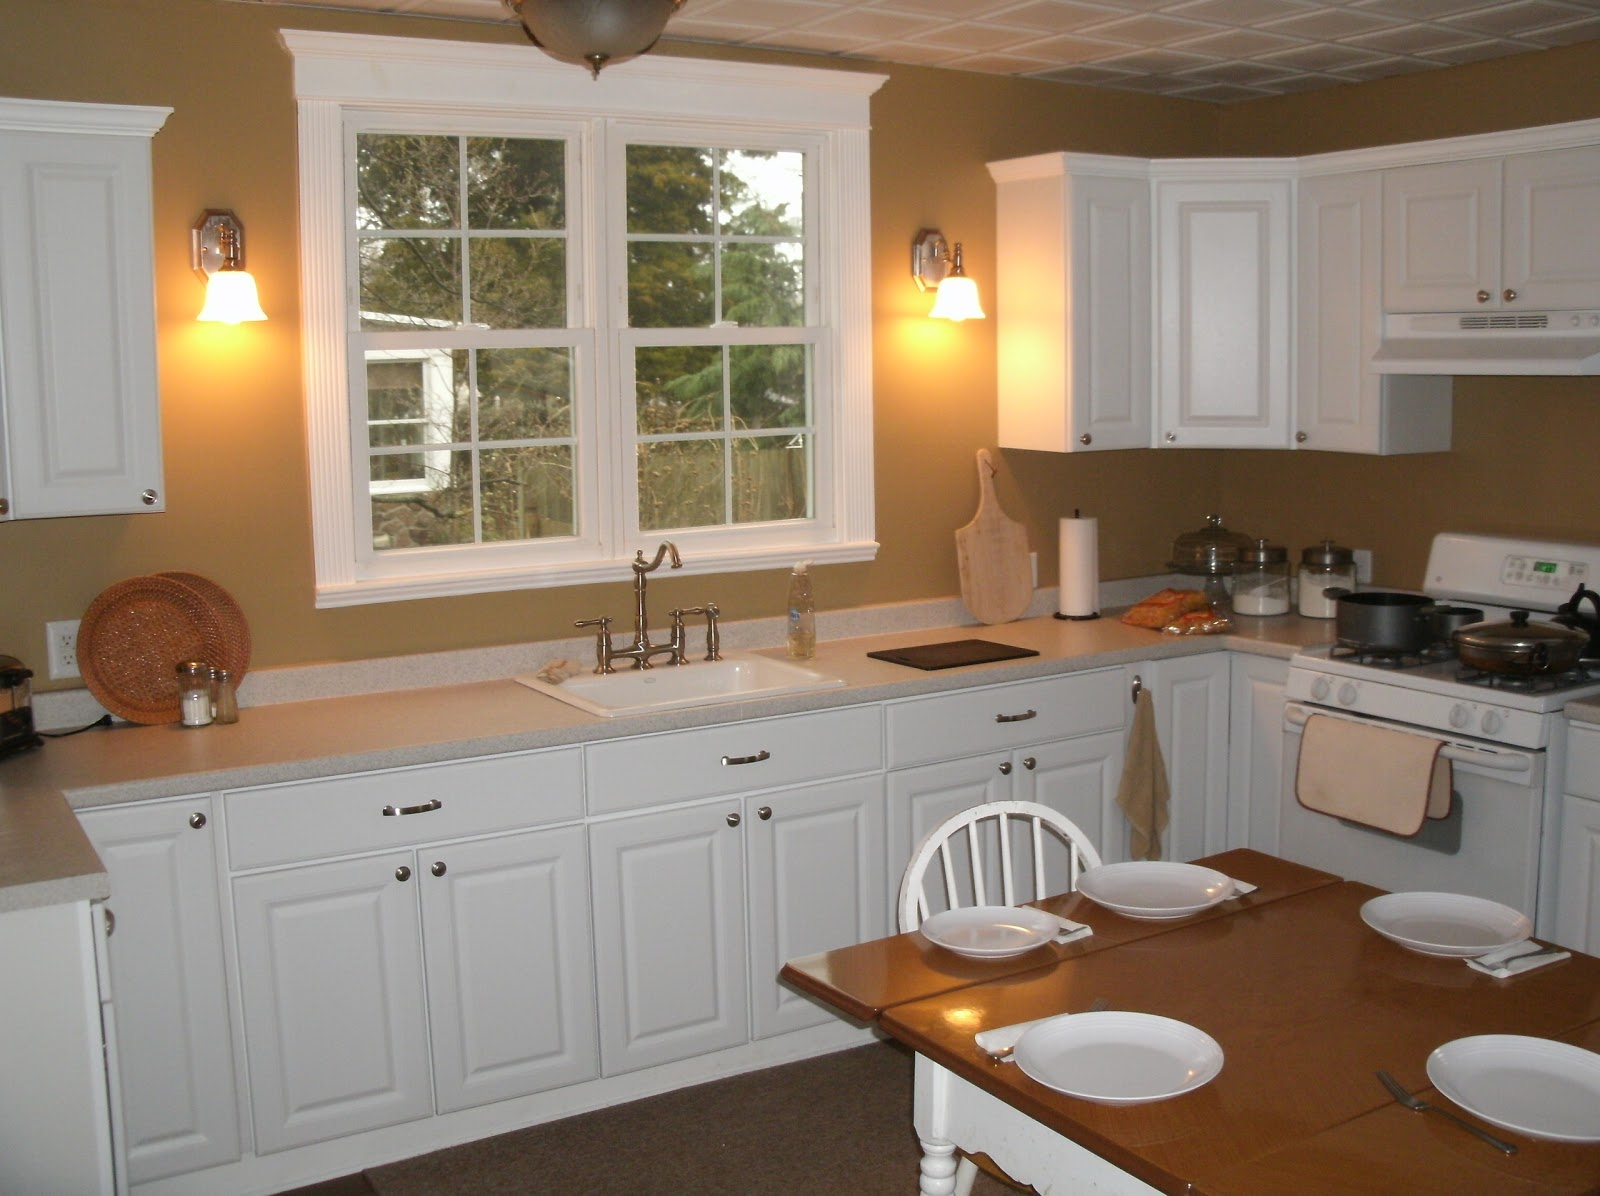 Home remodeling and improvements tips and how to 39 s for Small kitchen remodel pictures